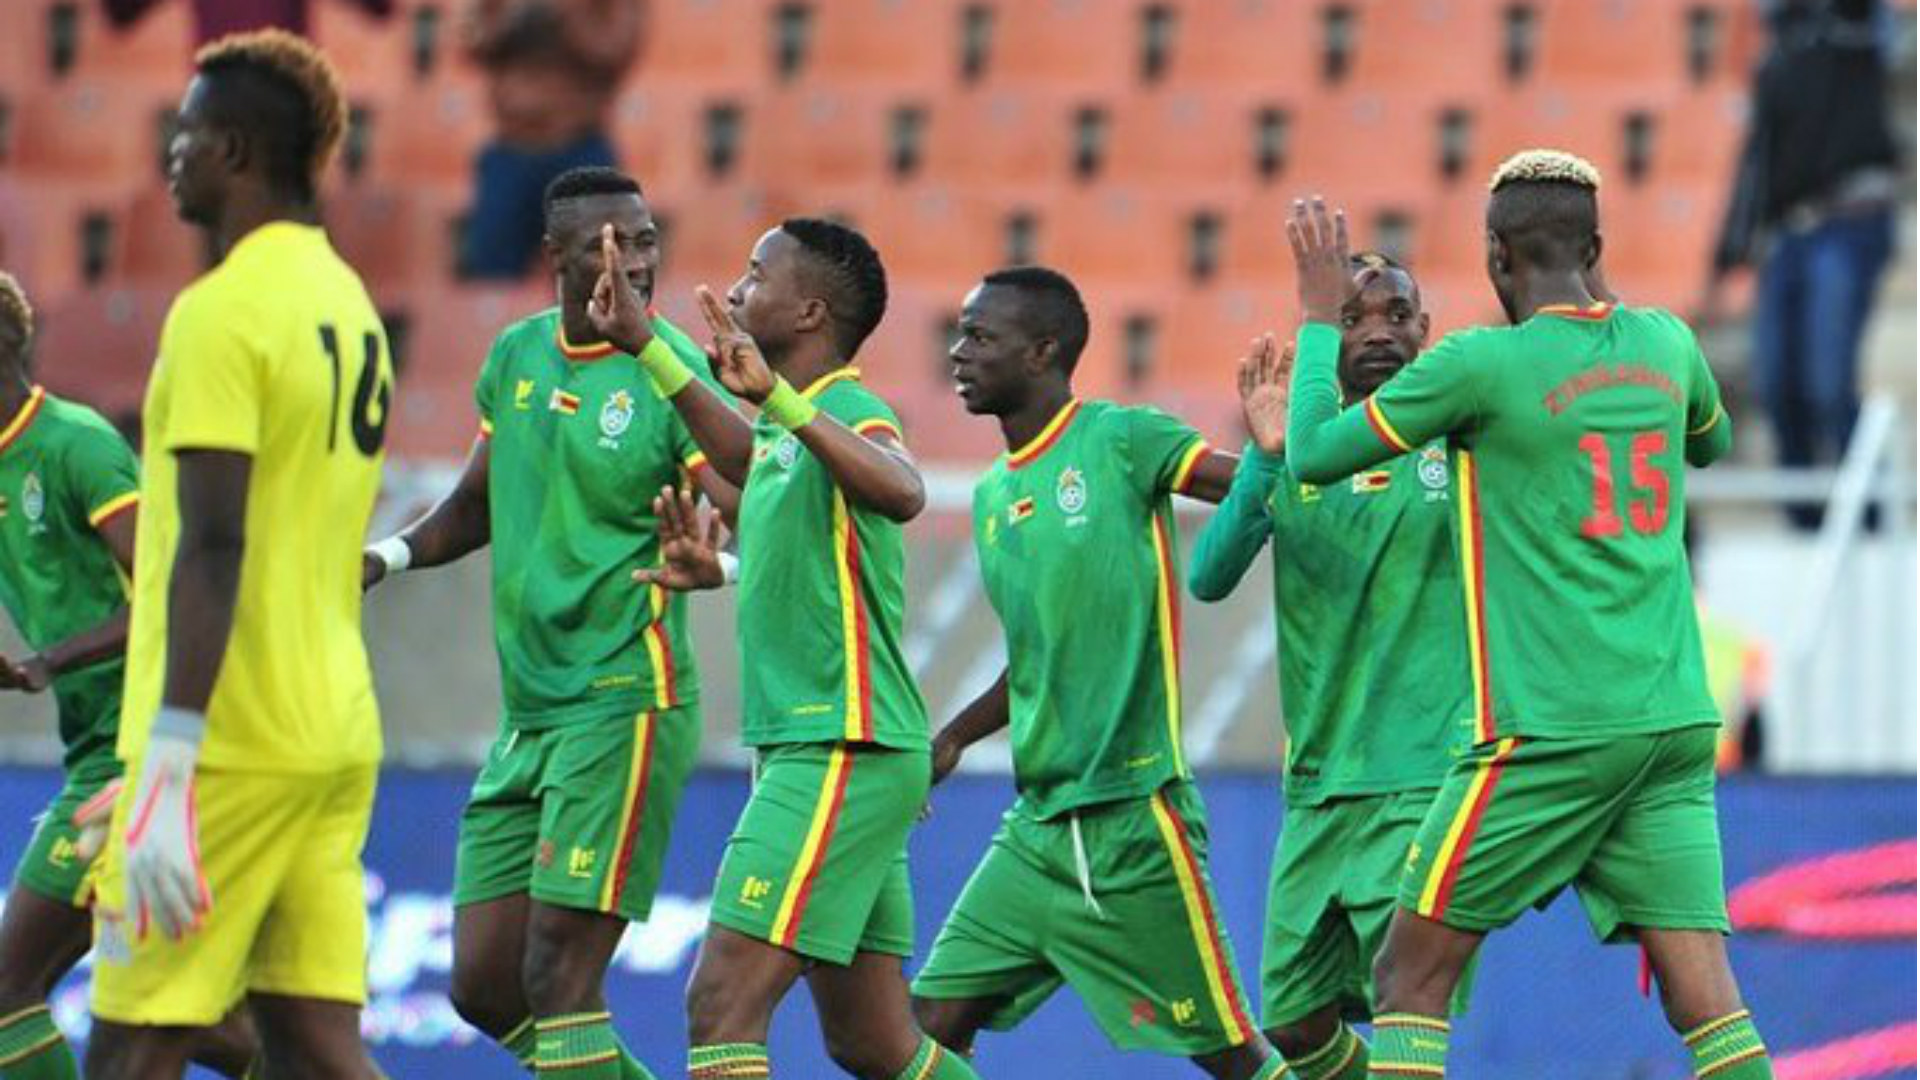 'We will certainly try our best' – Logarusic upbeat about Zimbabwe's Chan chances